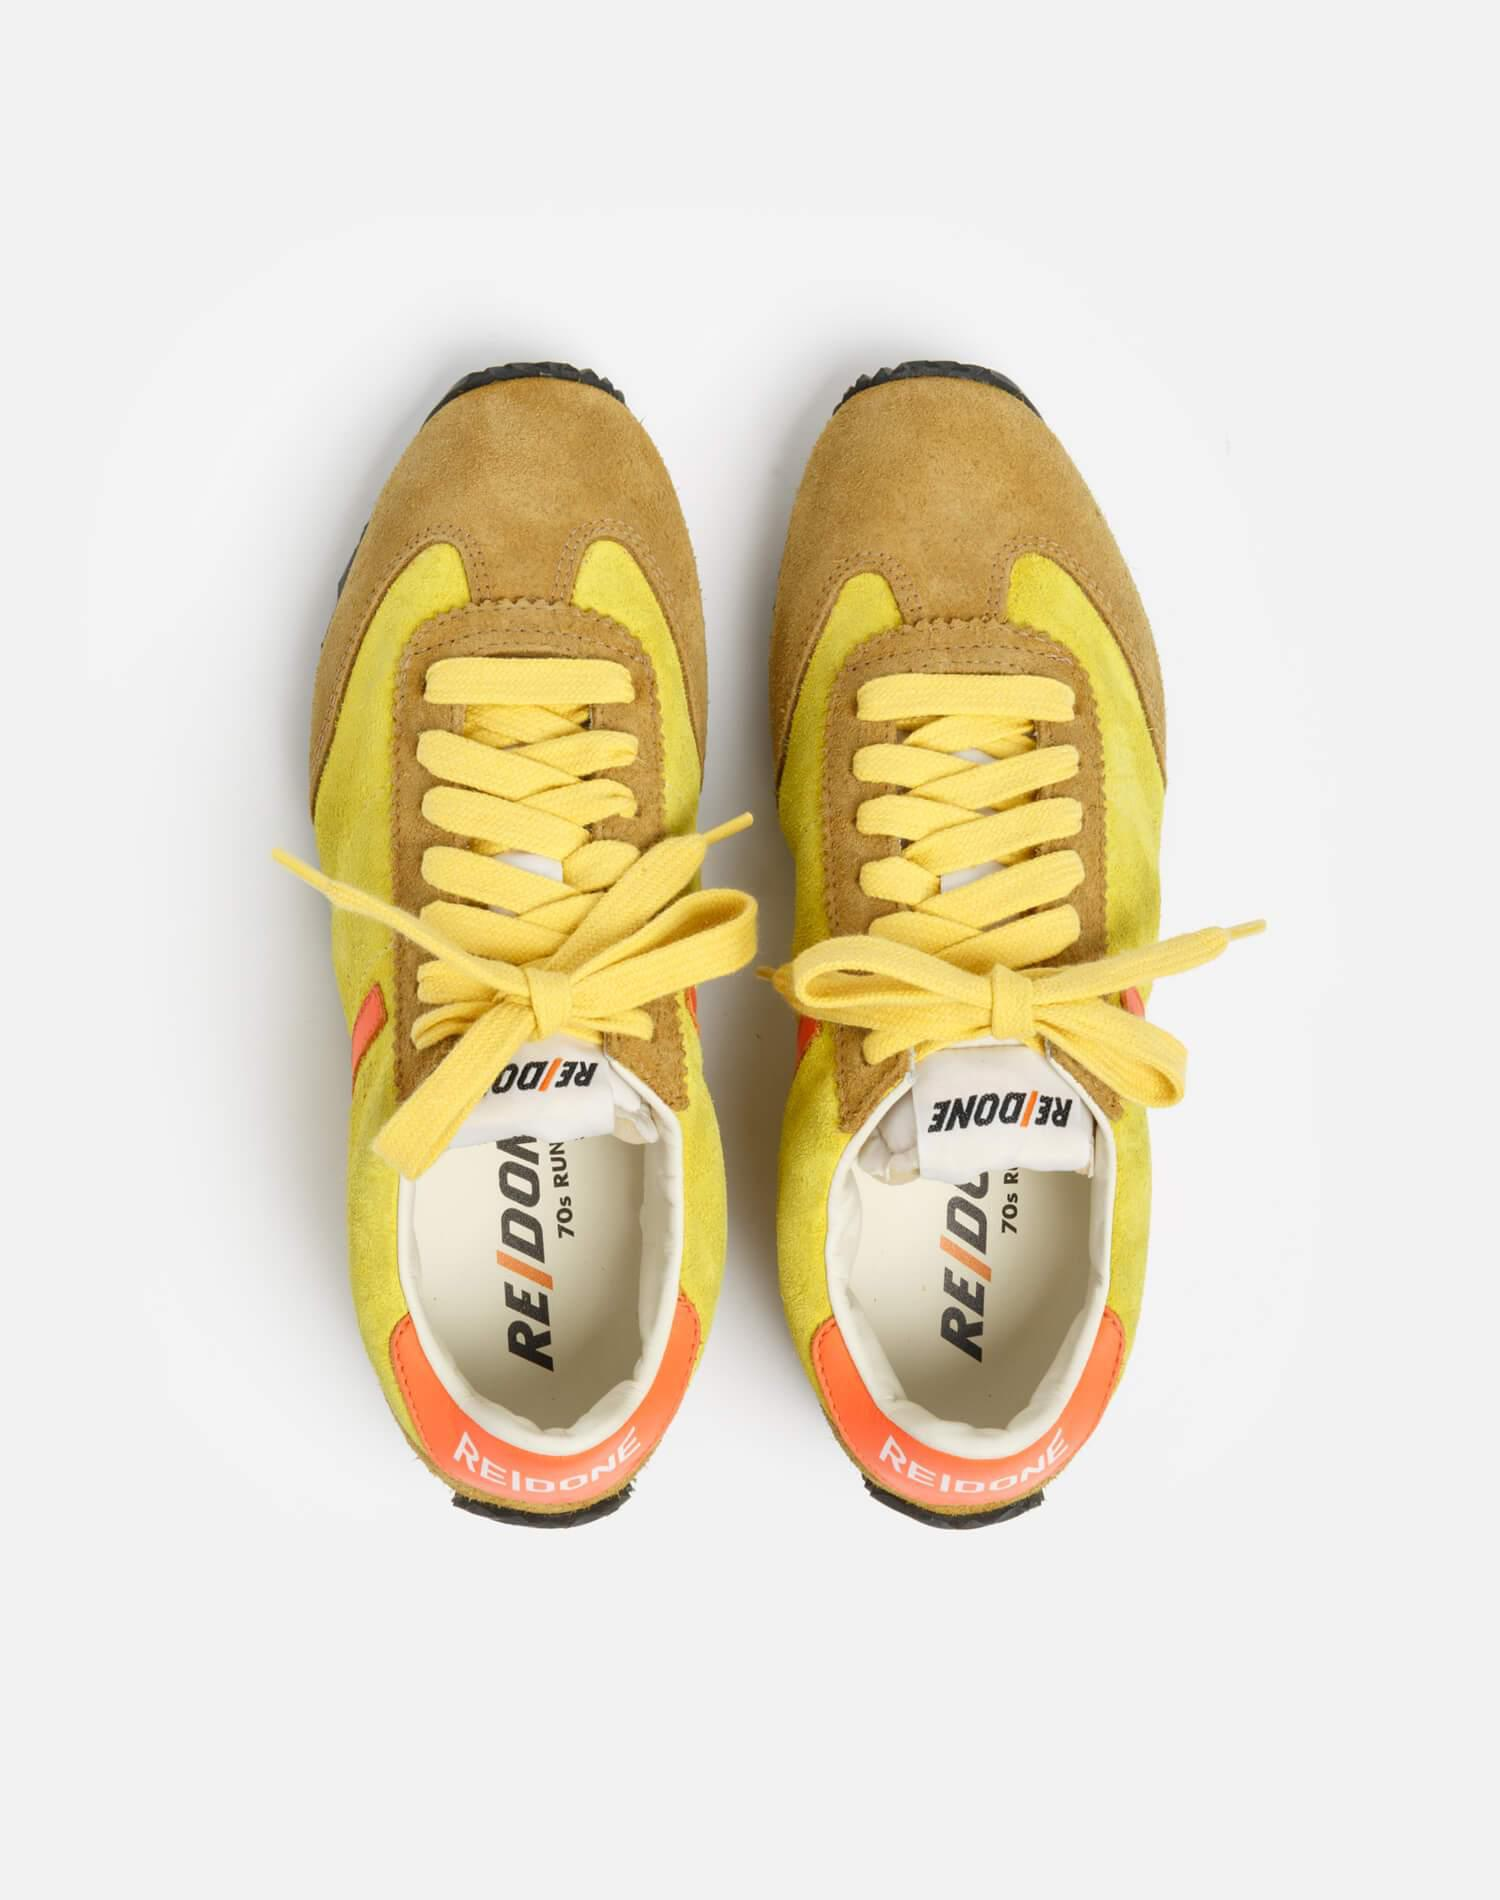 70s Runner Shoe - Lemon and Tan and Orange Suede 2